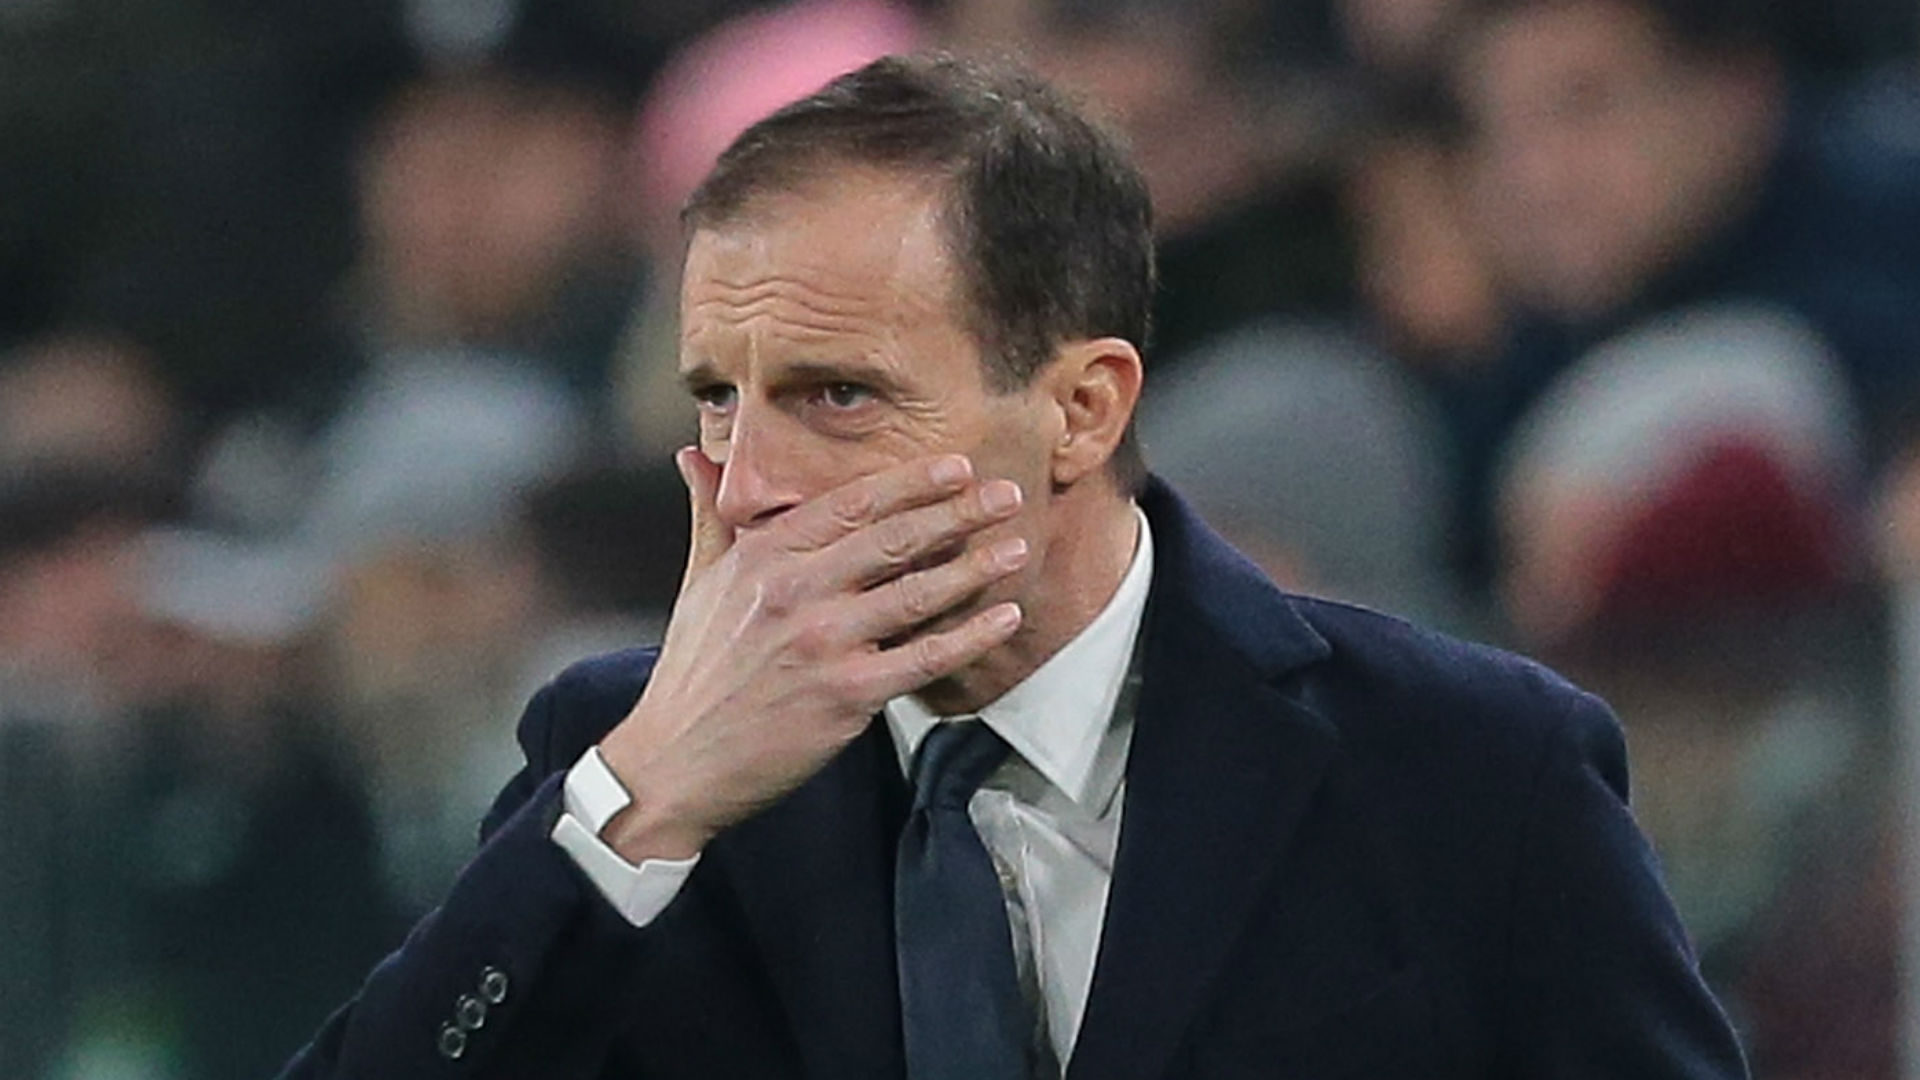 Juventus achieved their objective, despite everything going wrong – Allegri